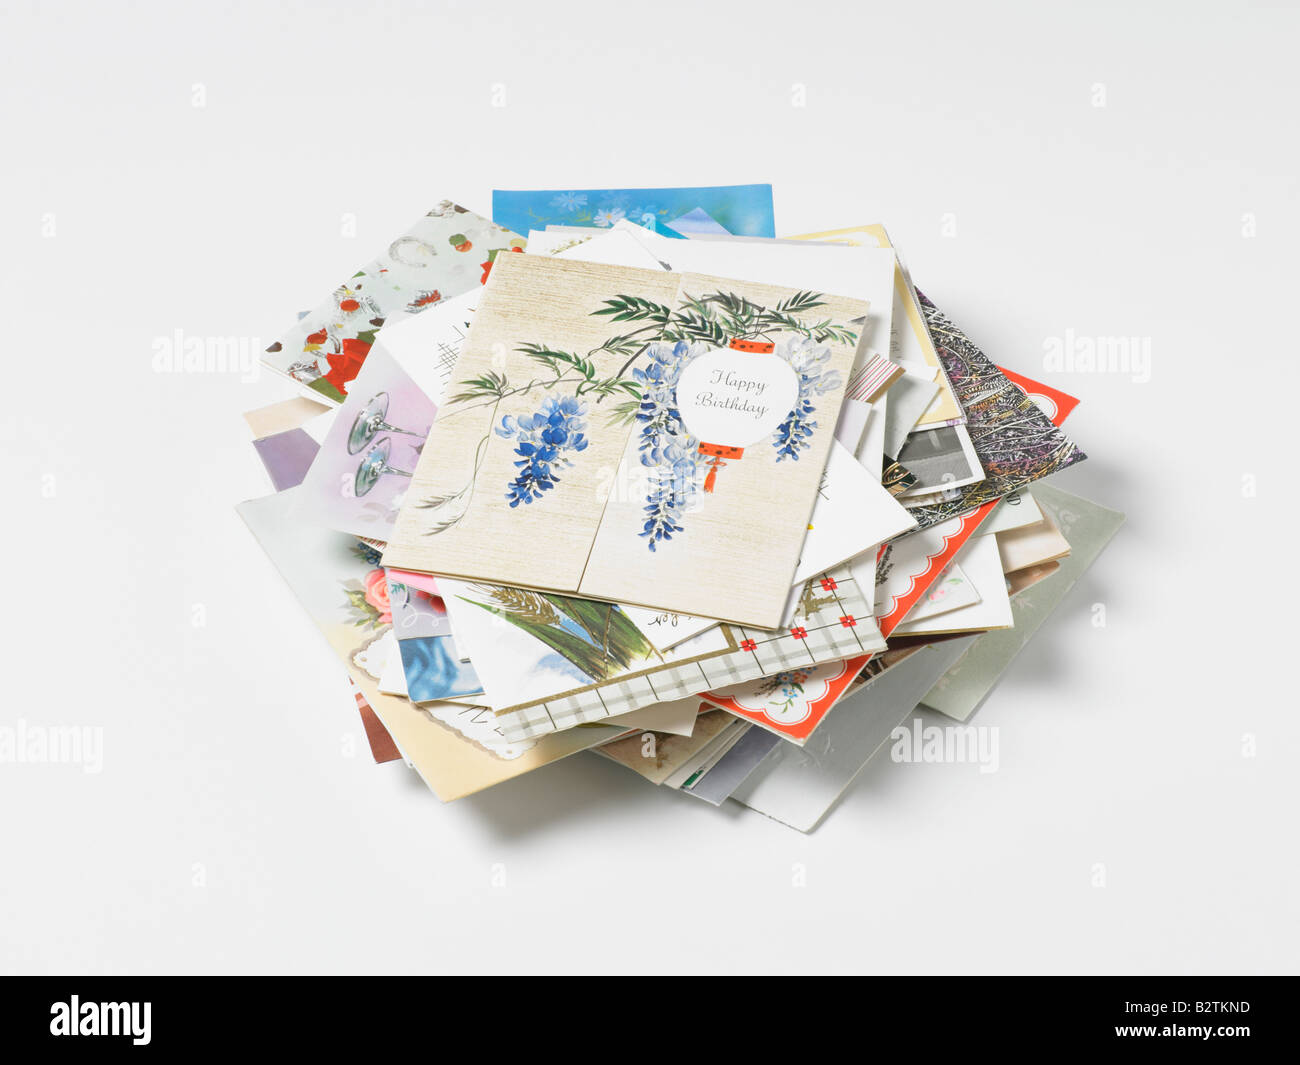 pile of old greetings cards - Stock Image